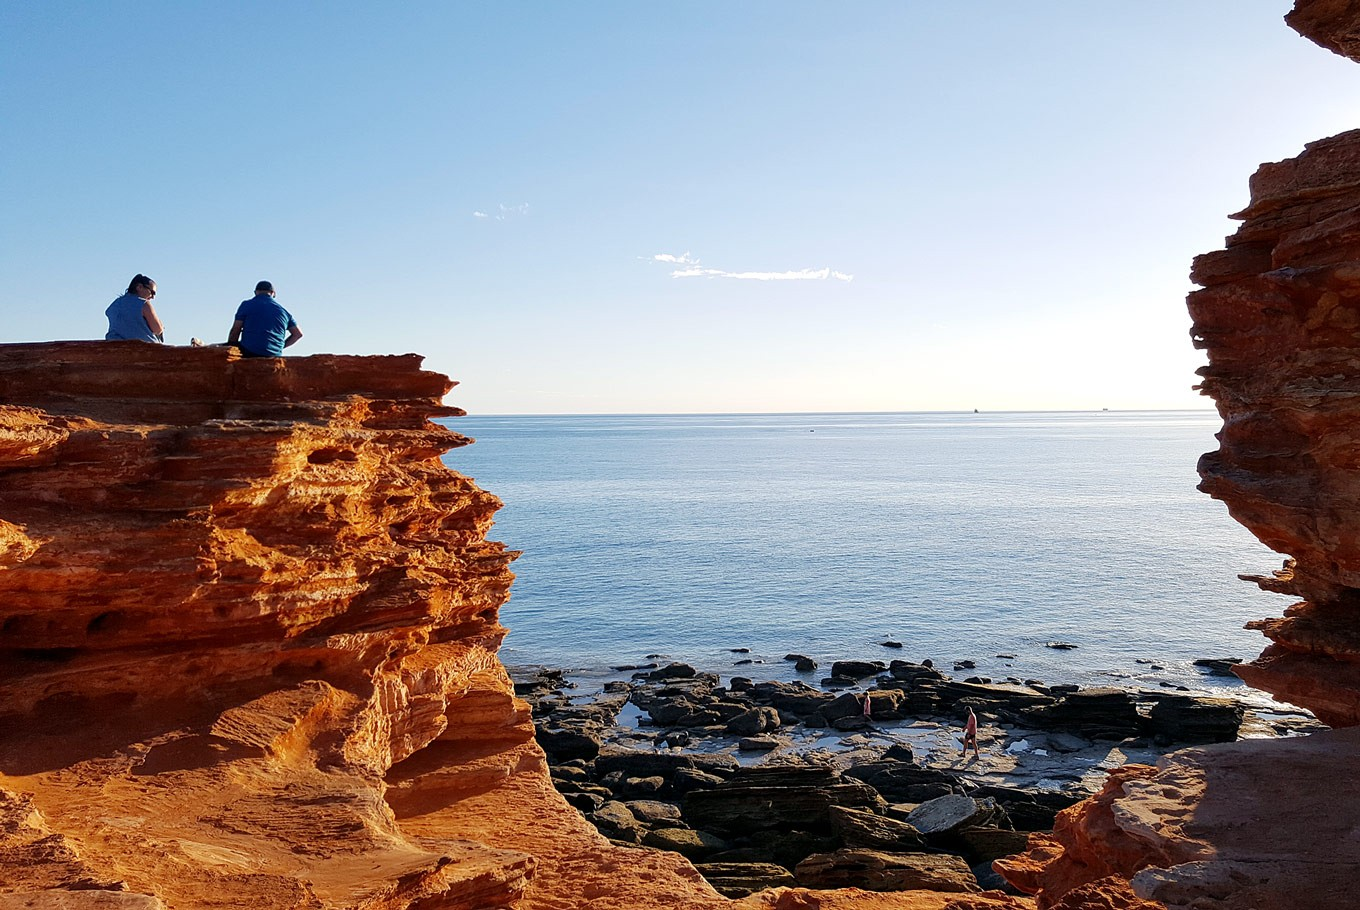 For Asian history in Australia, check out Broome